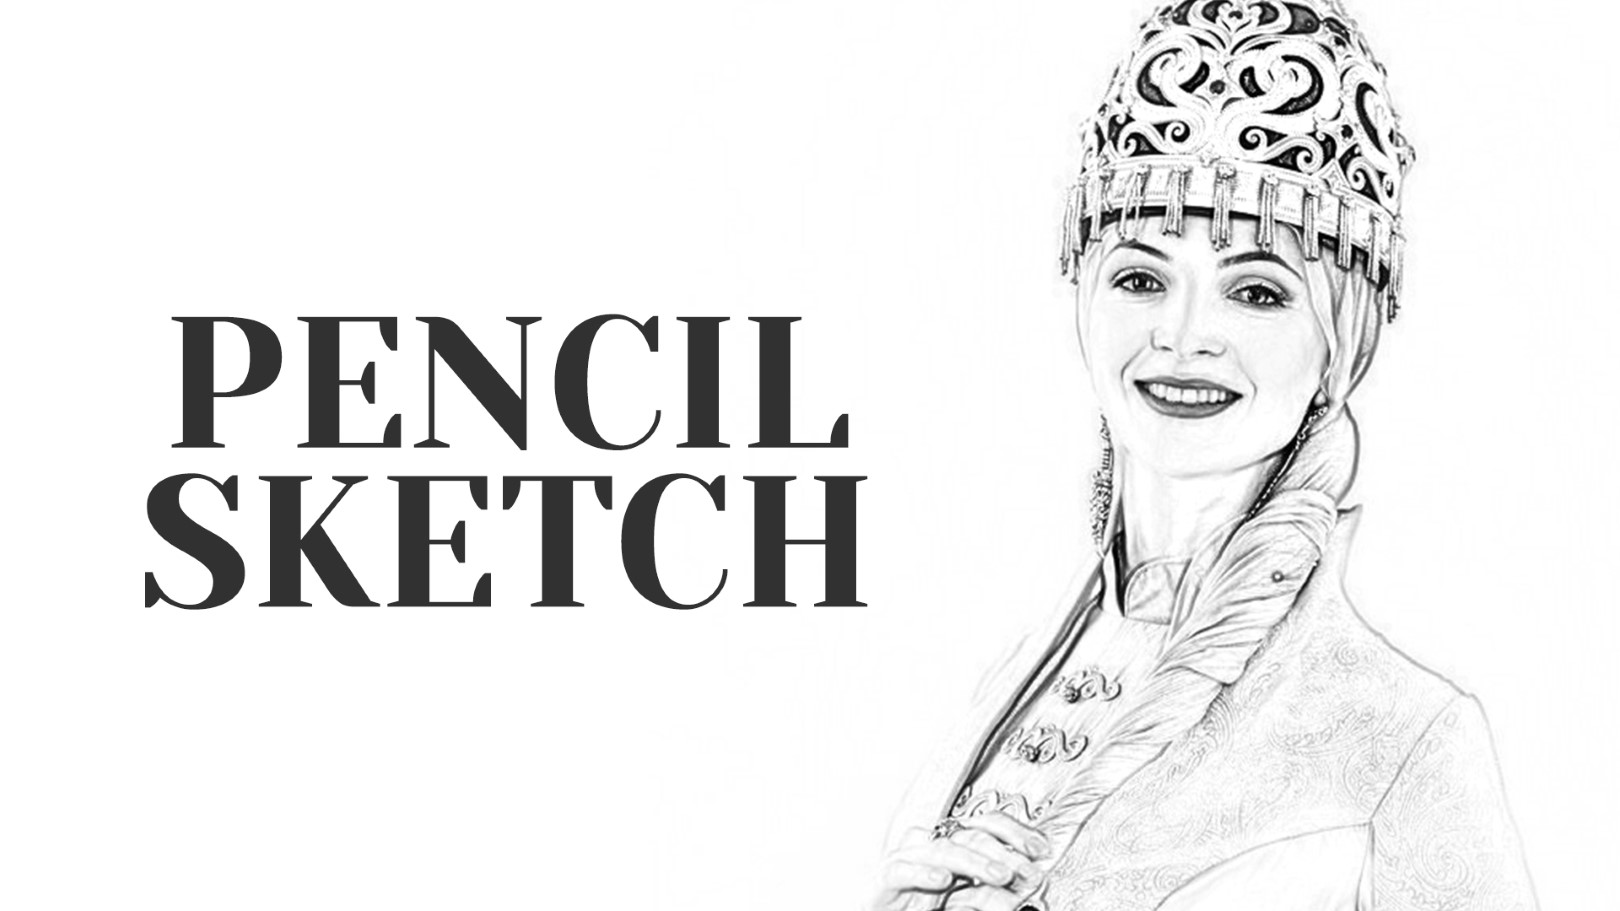 Pencil sketch photo effects photoshop action download psdesire